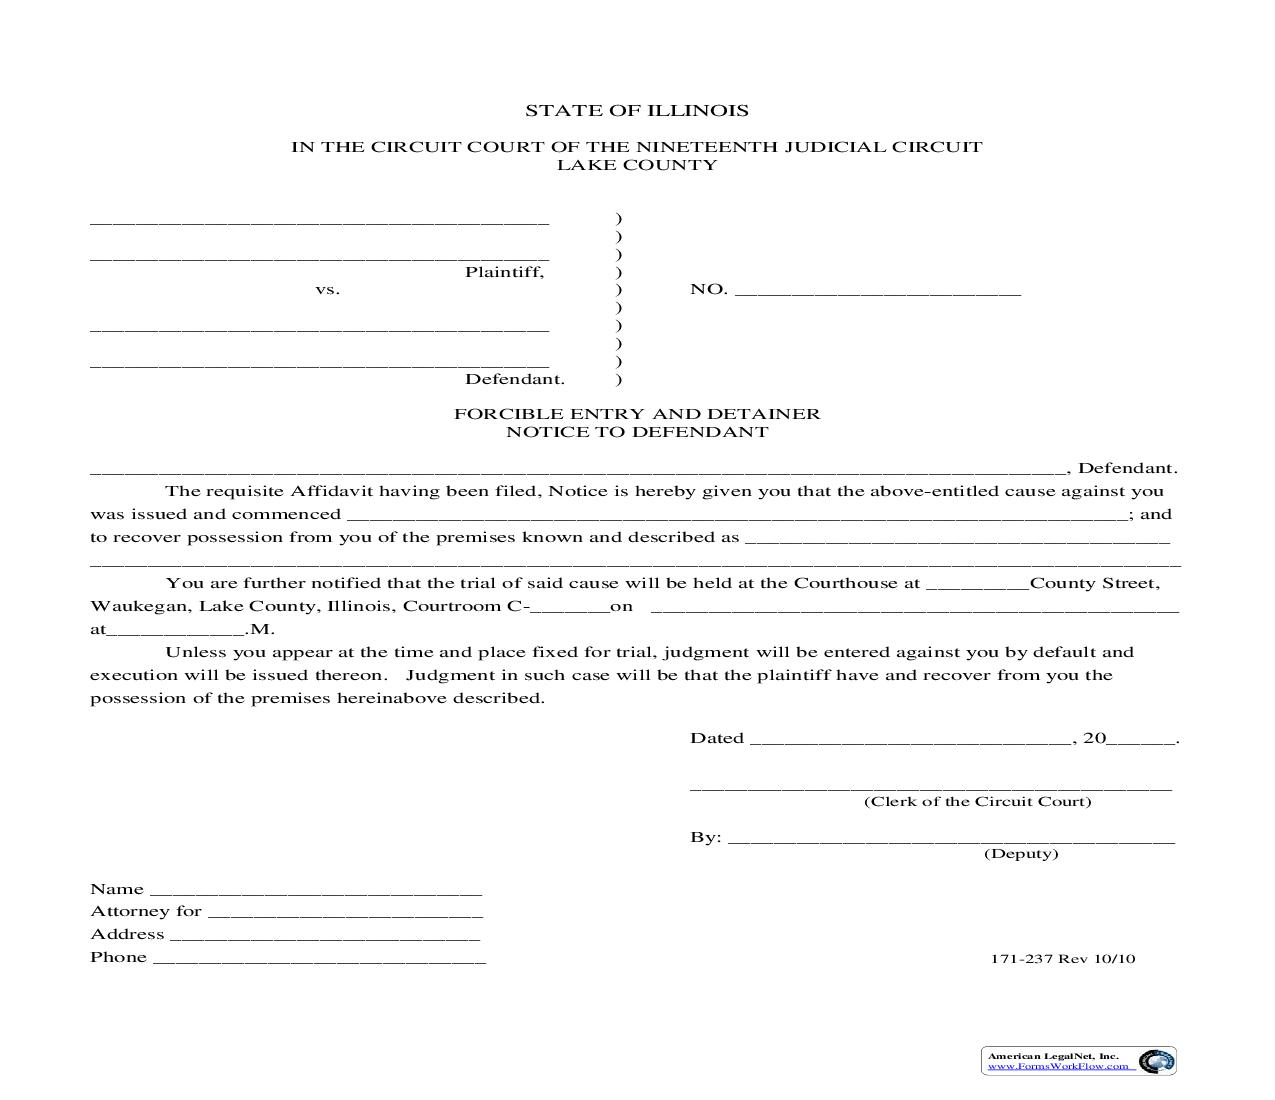 Forcible Entry And Detainer Notice To Defendant {171-237} | Pdf Fpdf Doc Docx | Illinois